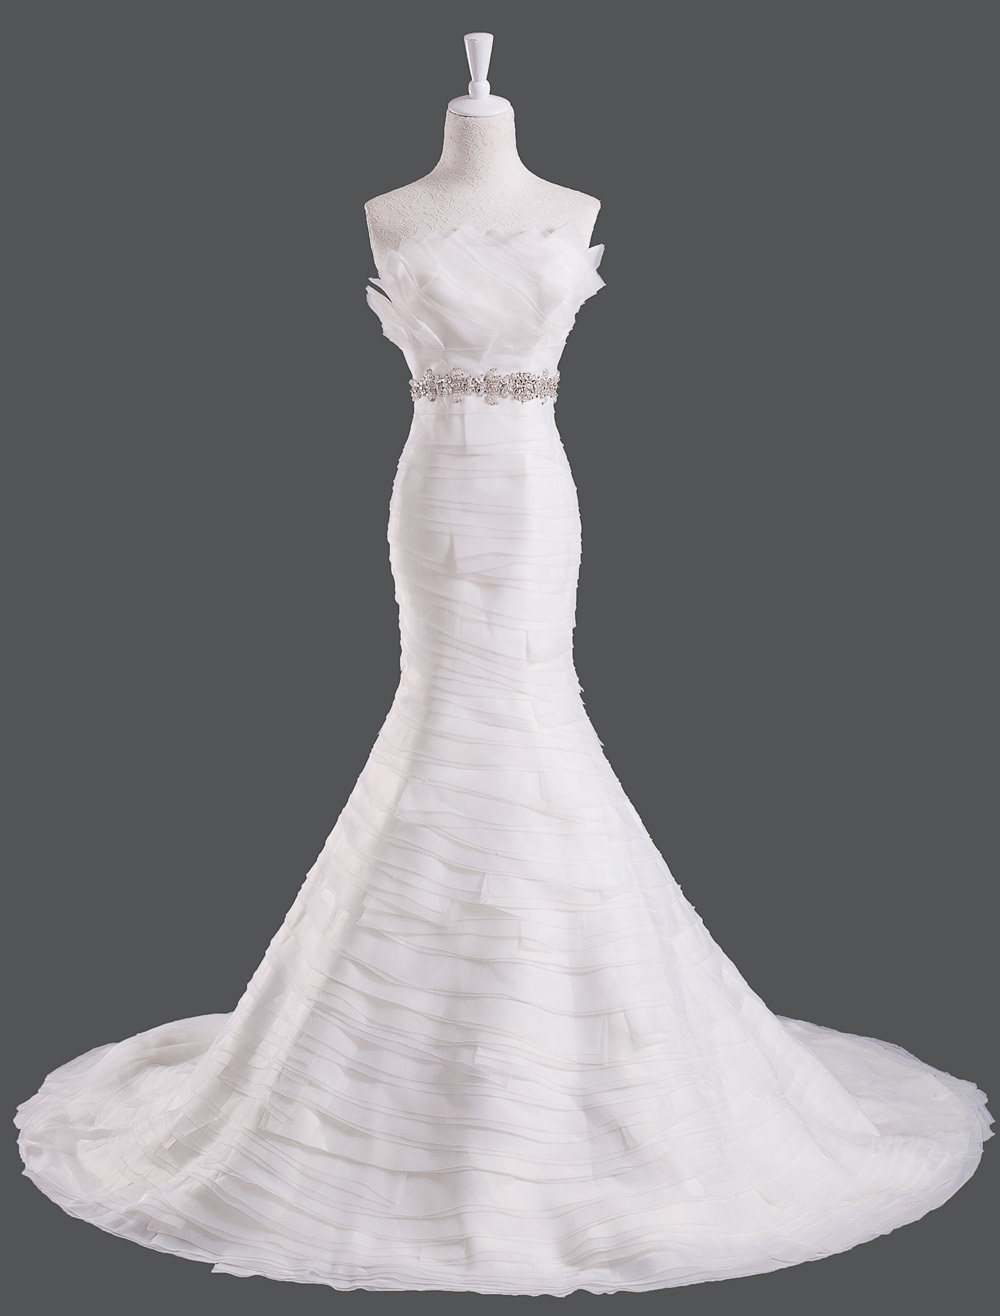 Elegant Ivory Rhinestone Organza Feather Mermaid Wedding Dress with Scalloped-Edge Neck